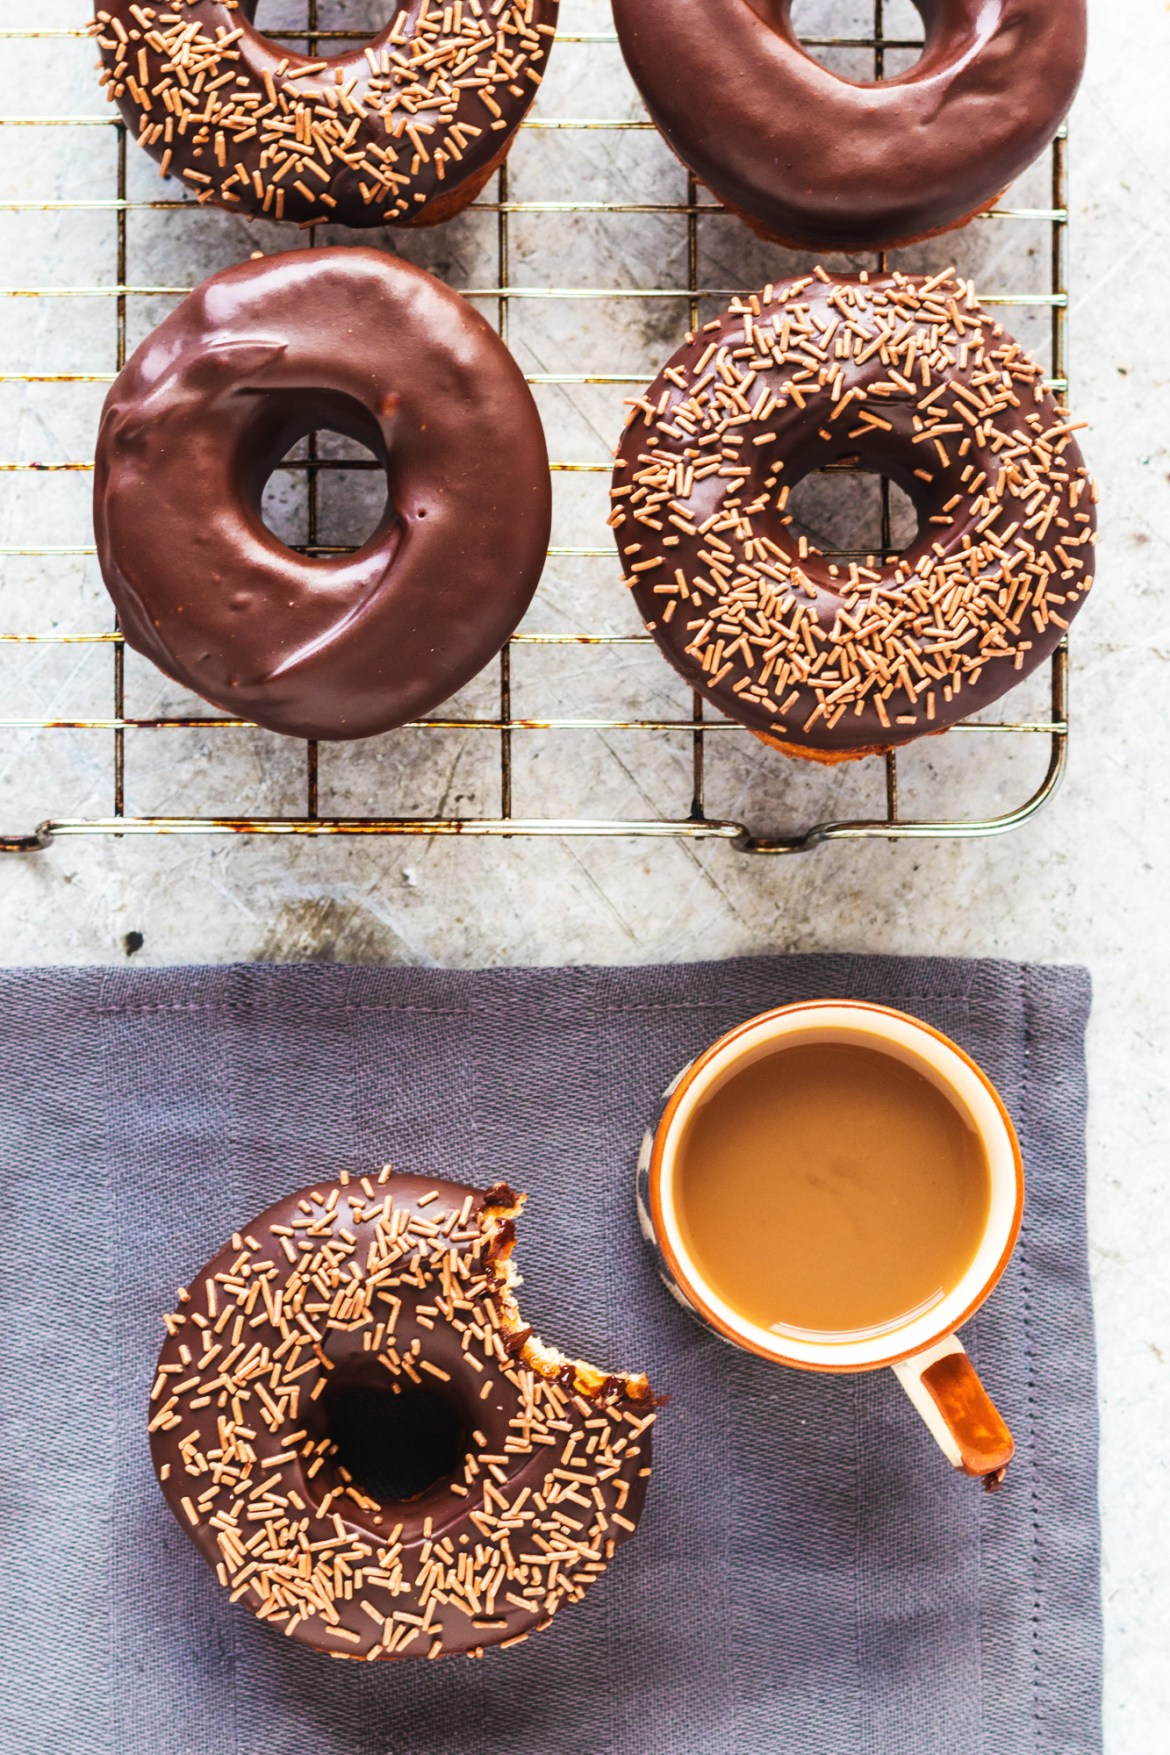 Vegan Chocolate Glazed Donuts